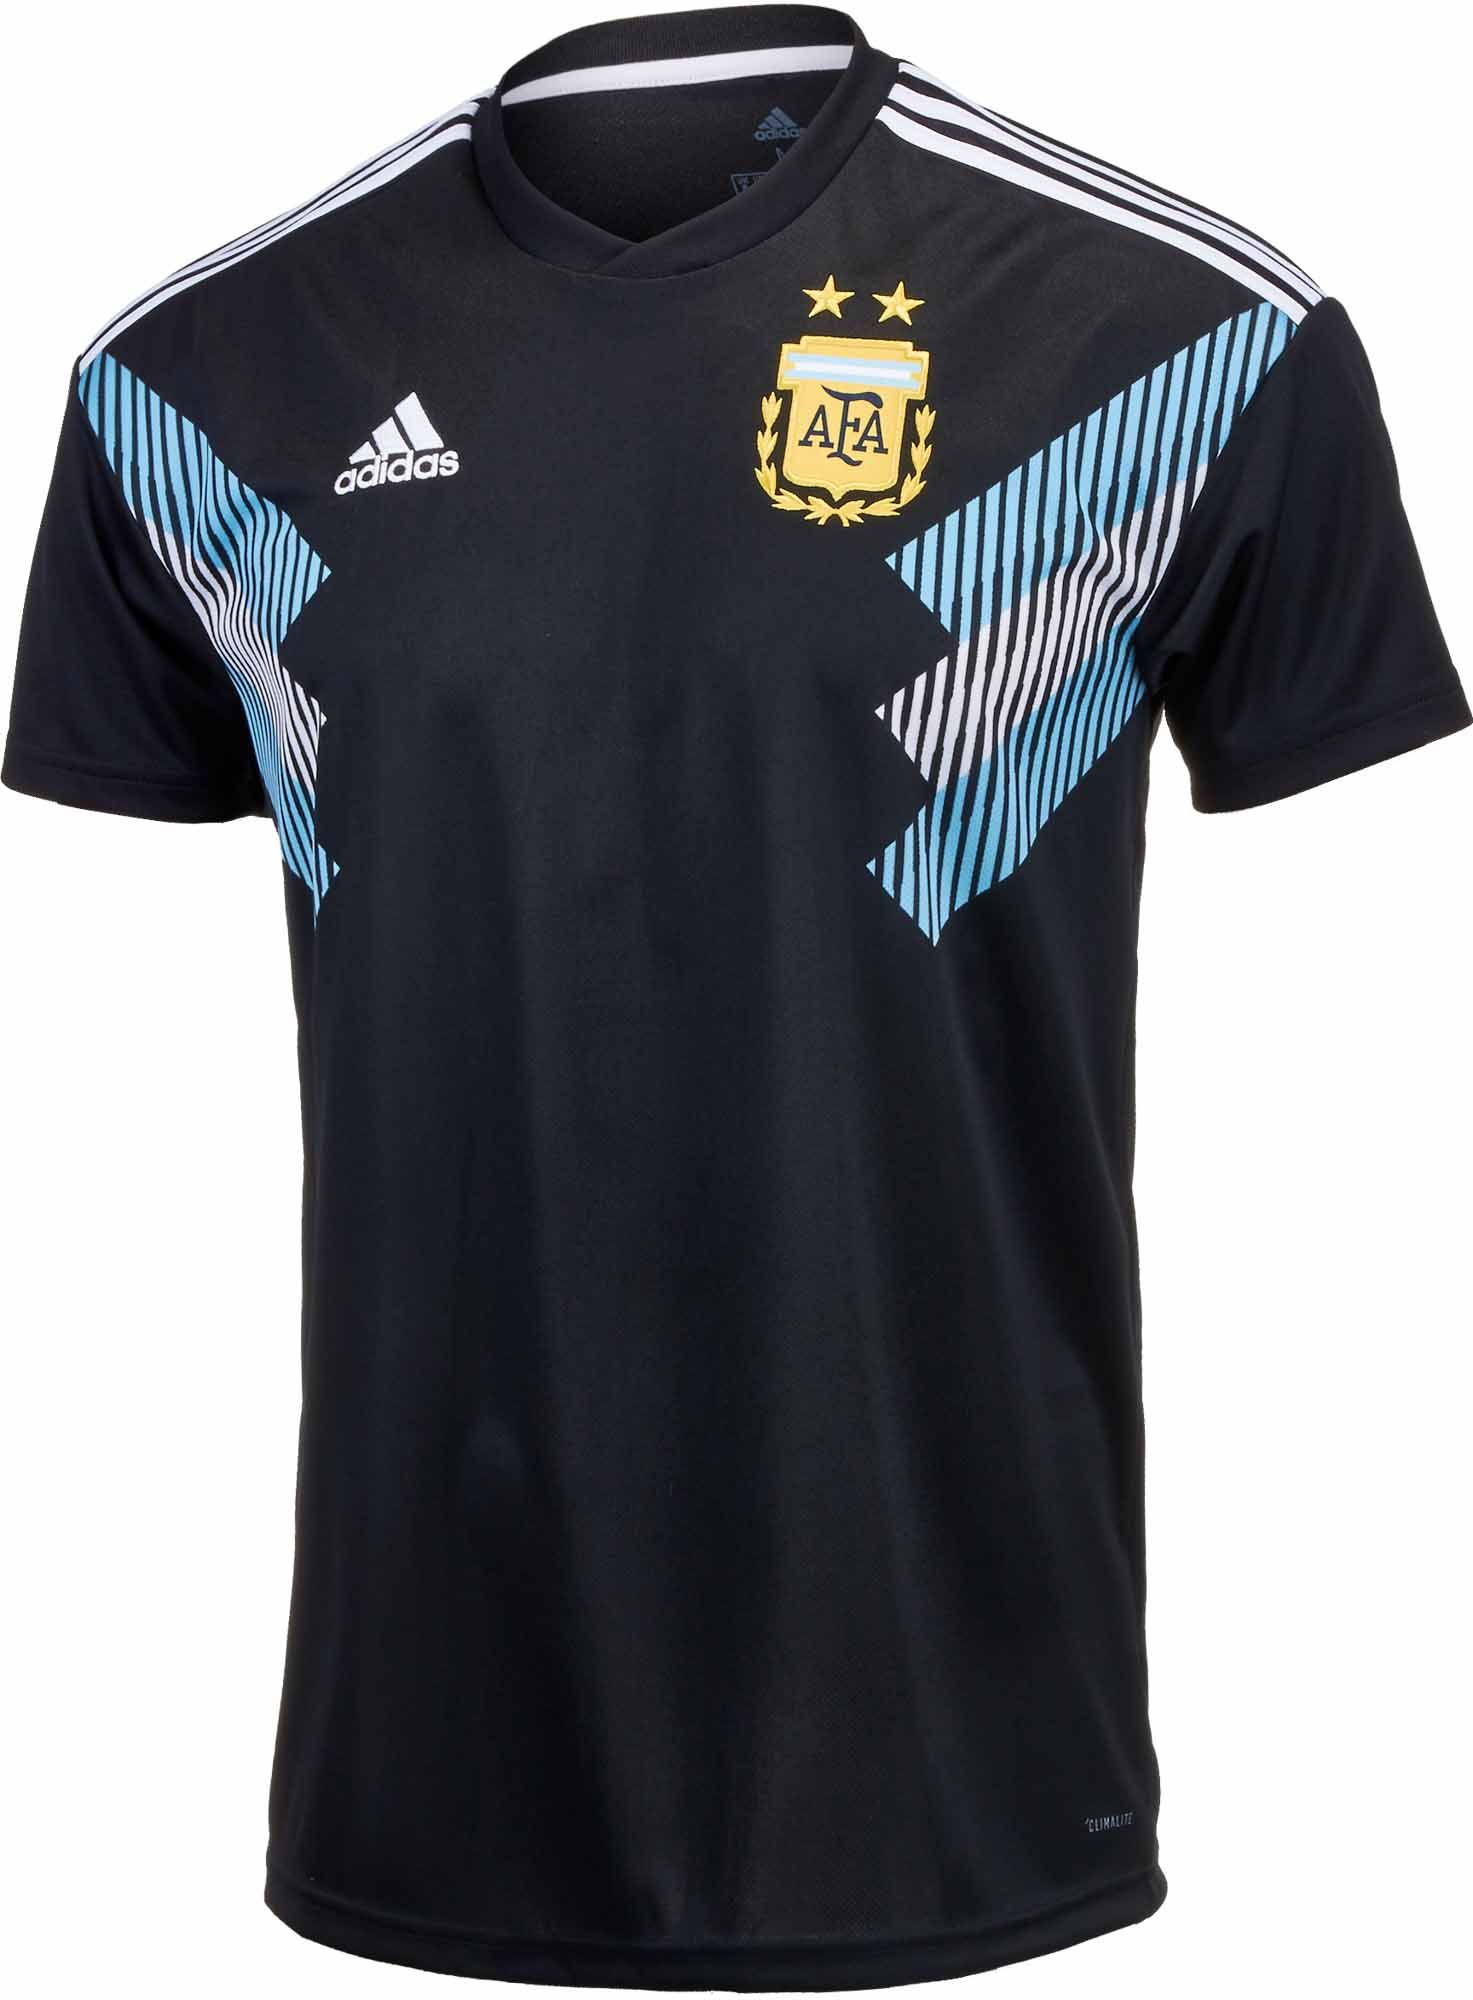 2018 adidas Argentina Away Jersey. Buy it from SoccerPro d257e8653